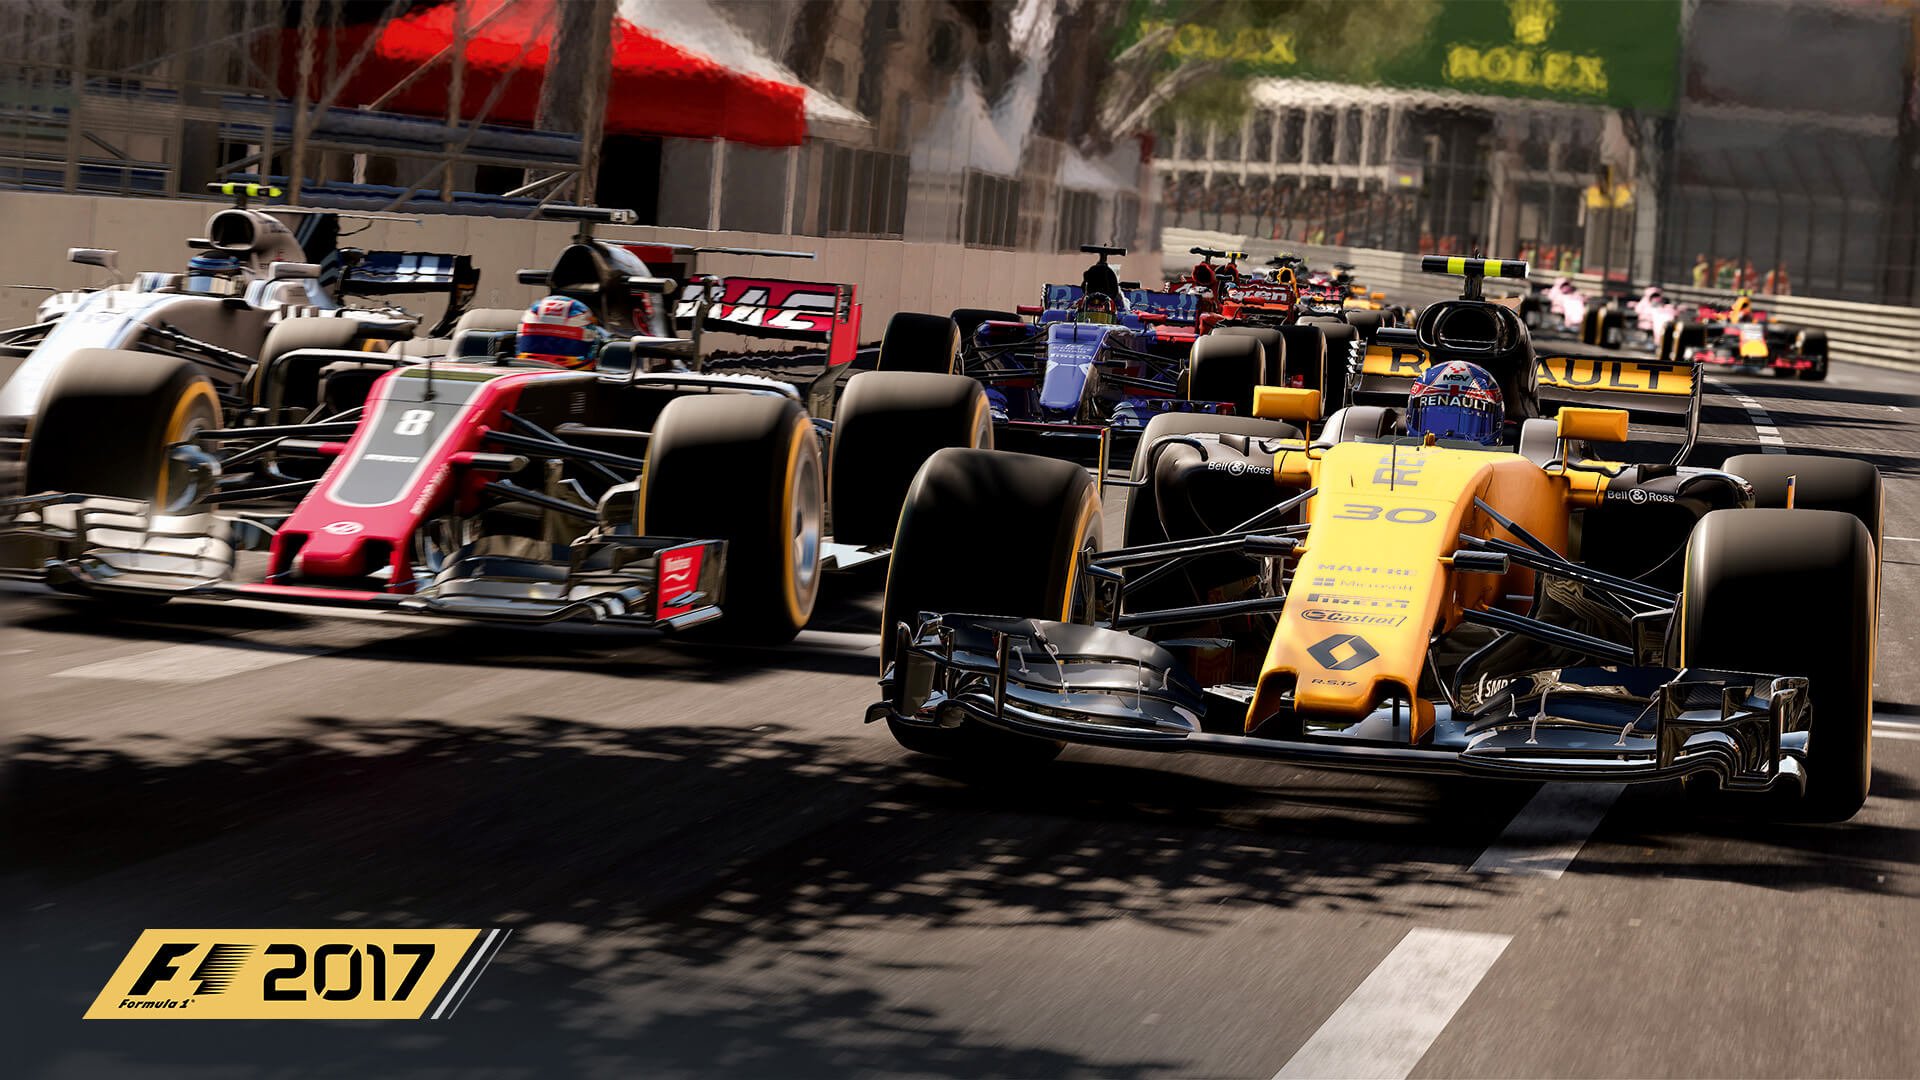 download f1 2017 hd wallpapers 1920x1080 read games reviews play online games download. Black Bedroom Furniture Sets. Home Design Ideas